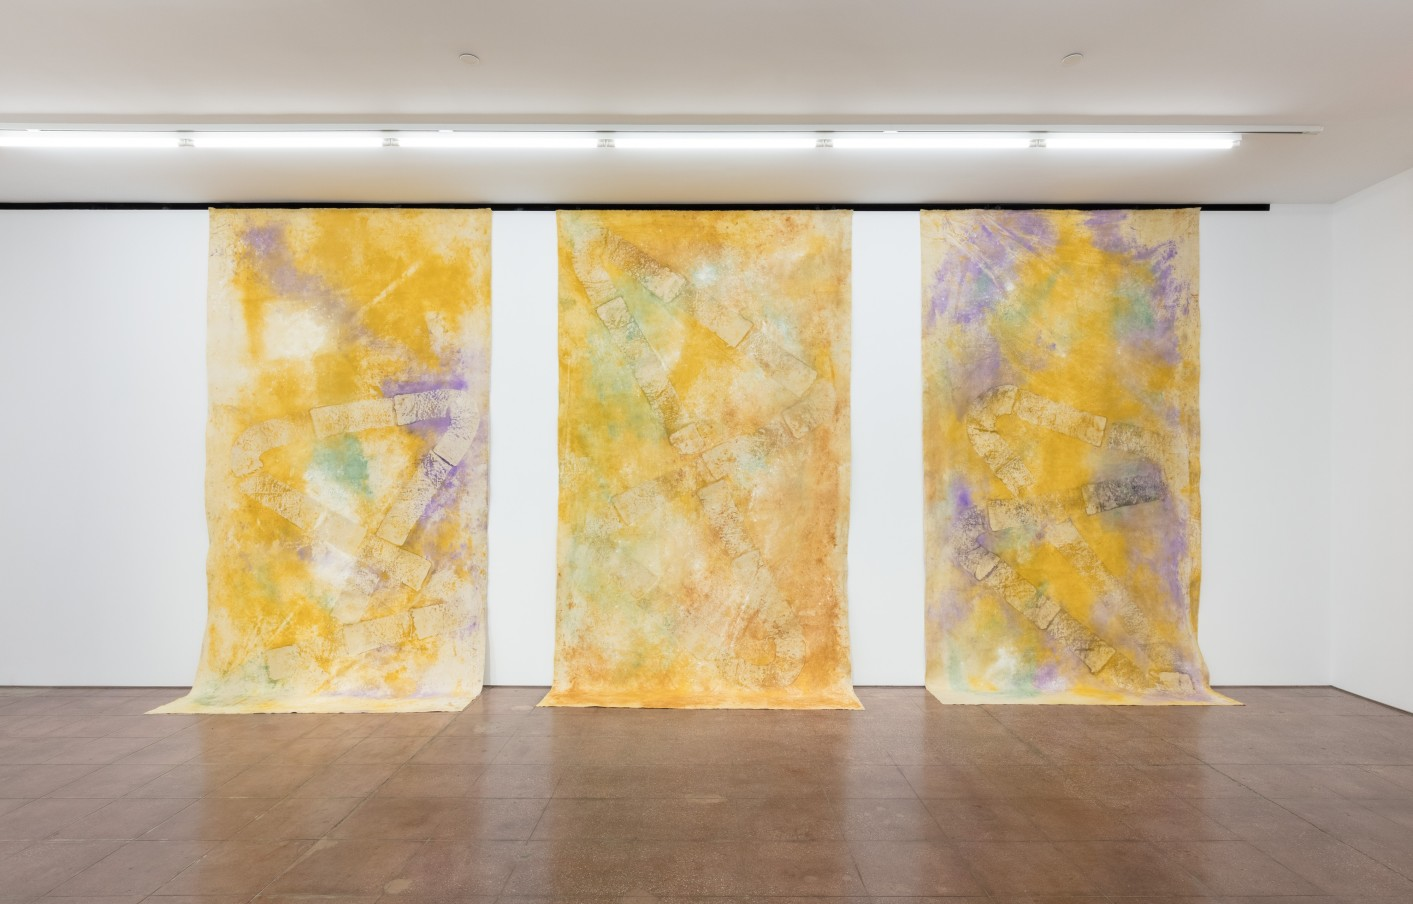 Jessica Warboys 3x River Wax Painting X (I, II, III), 2019 Mineral pigment and beeswax on canvas in three (3) parts Part 1: 381 x 210.8 cm 150 x 83 in Part 2: 381 x 210.8 cm 150 x 83 in Part 3: 381 x 210.8 cm 150 x 83 in